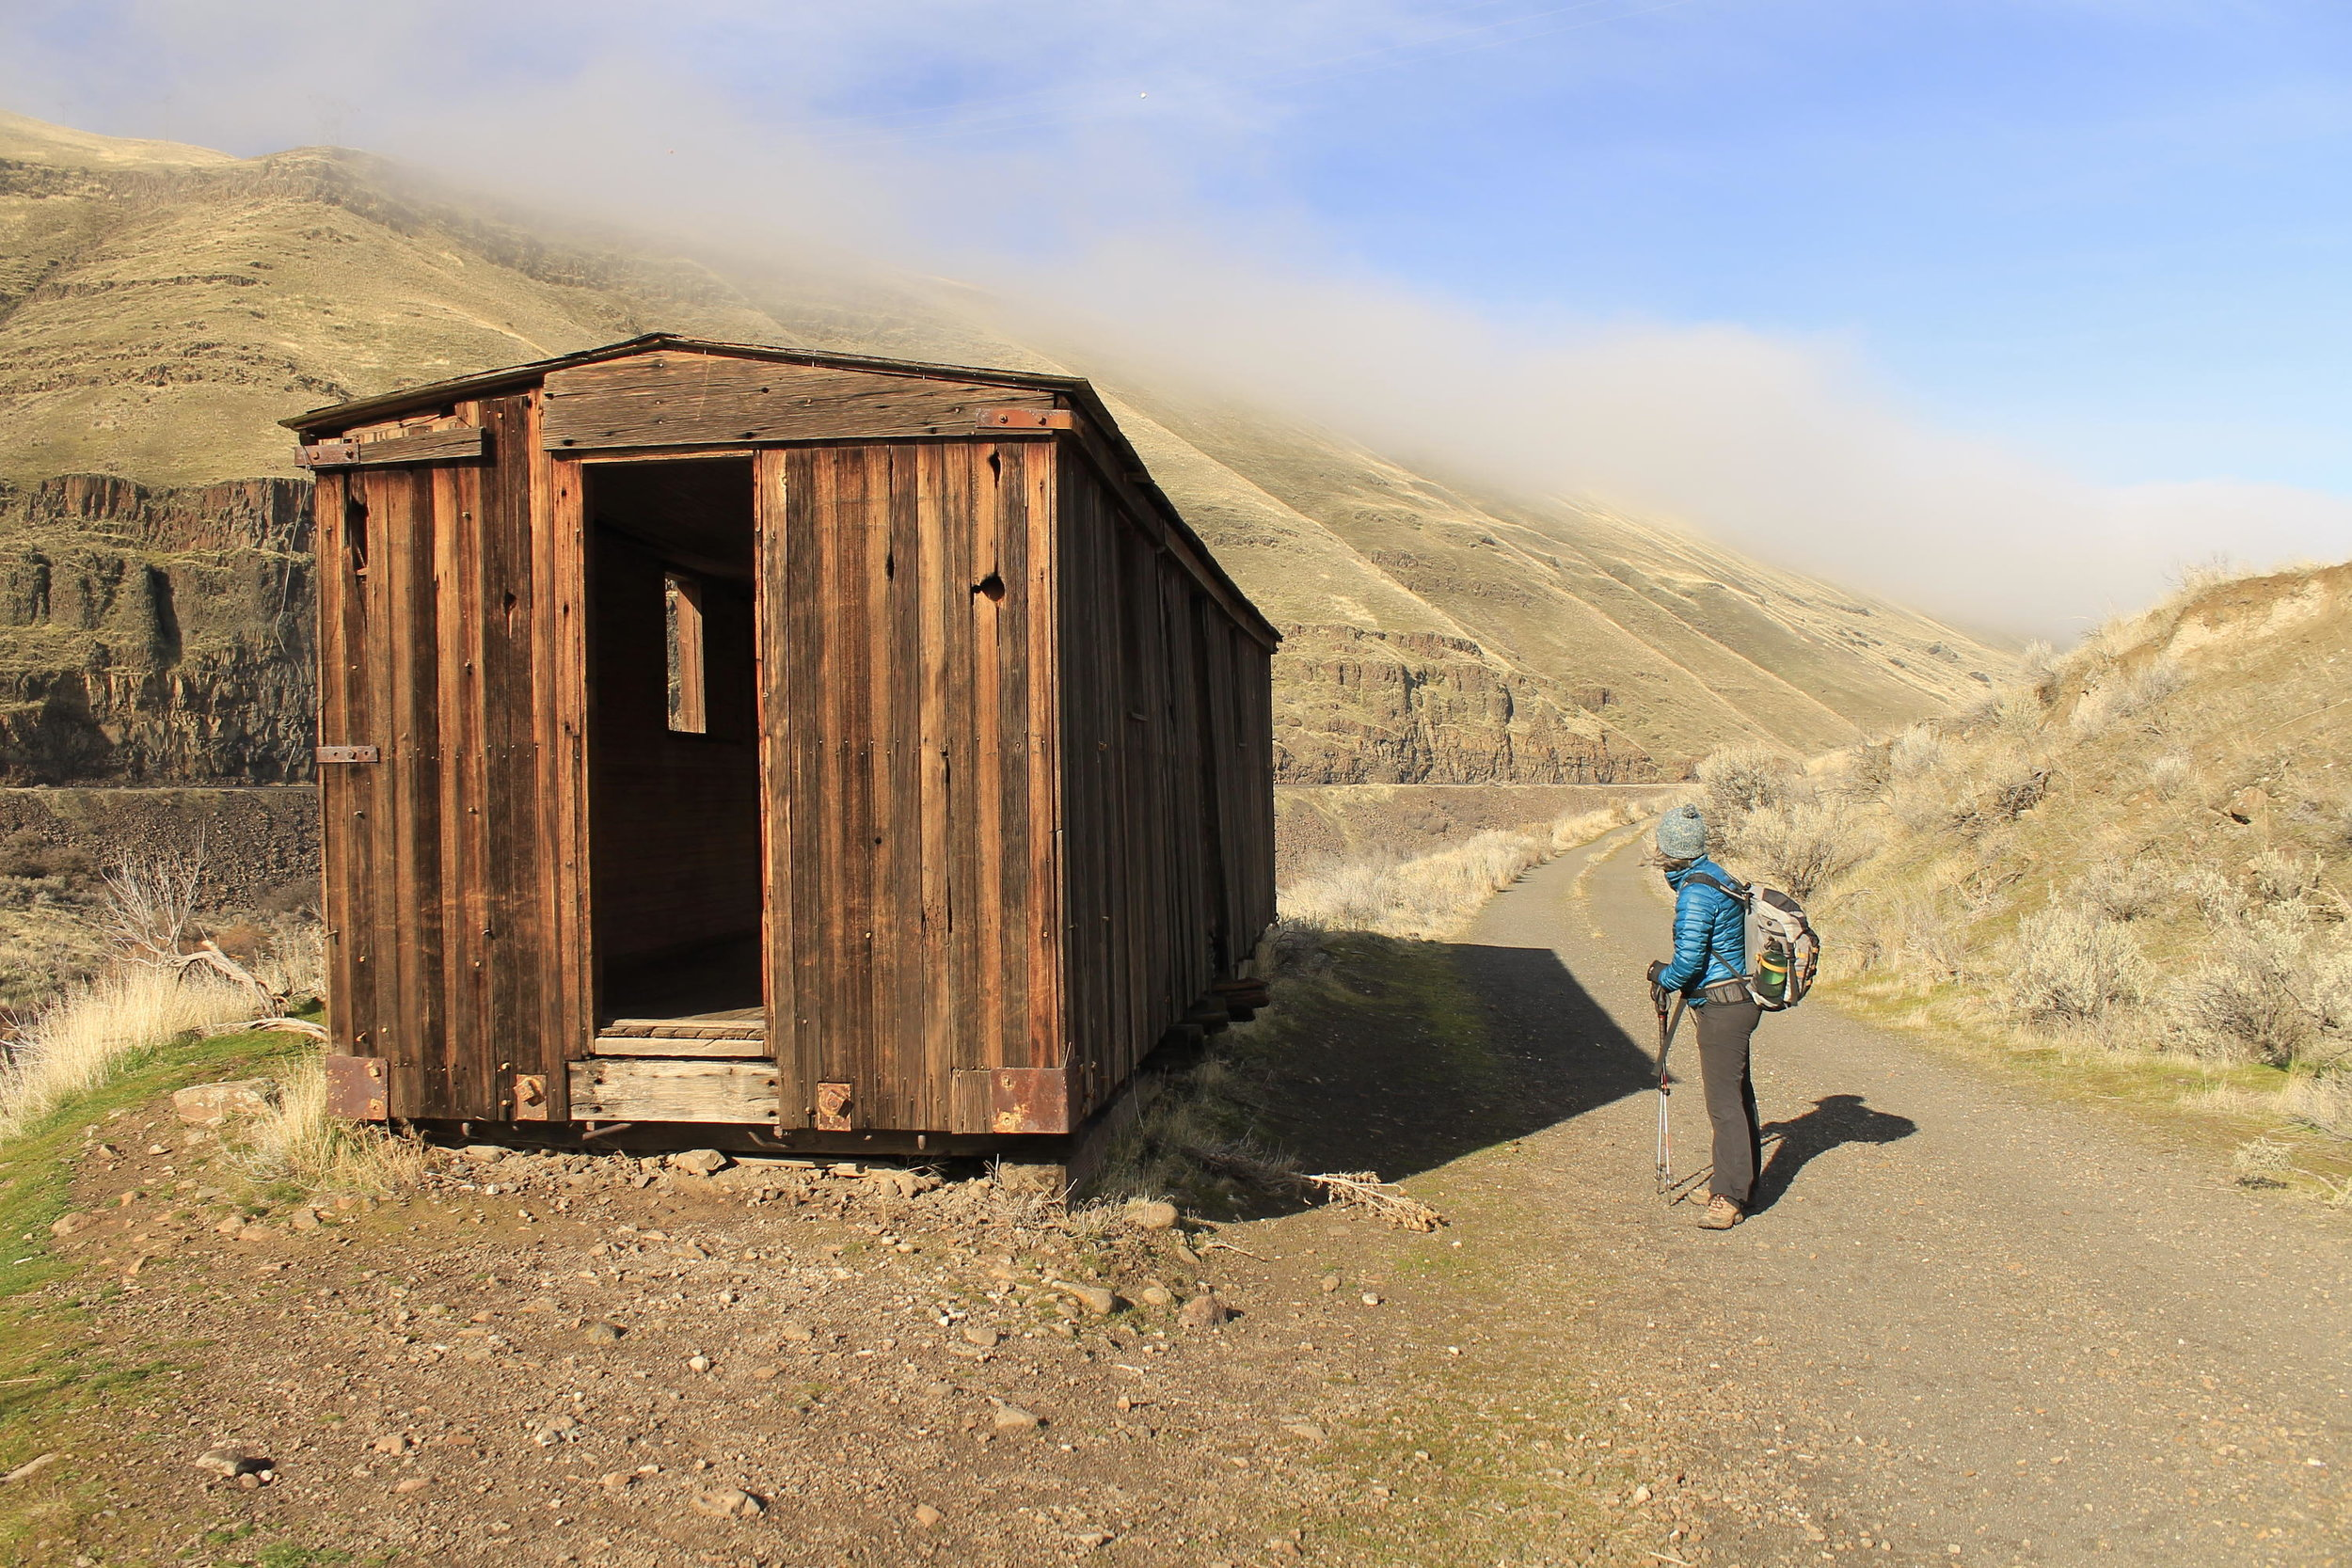 In memorium: The Deschutes River Trail boxcar, January 2018. The boxcar burned in the Substation Fire during the summer of 2018.